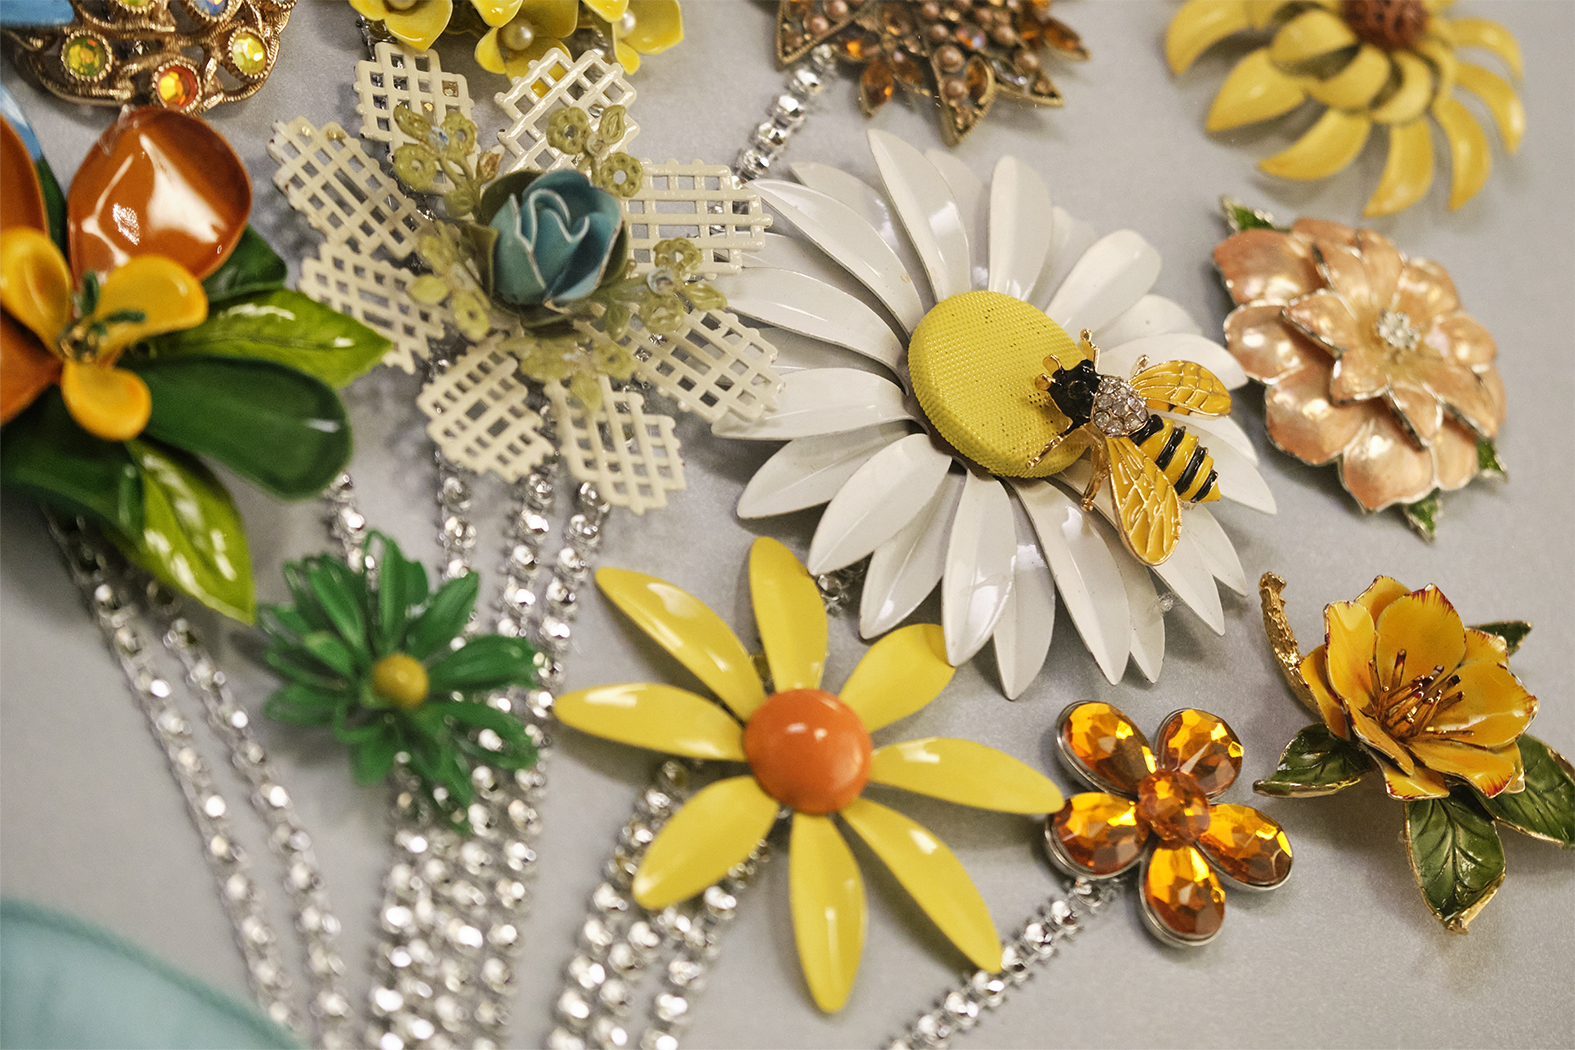 """""""J Schwanke's Life in Bloom"""" is filled with projects, recipes and crafts - all inspired by flowers- including this wall art- created from Vintage Flower Brooches- featured in Season 4- coming in April 2022."""